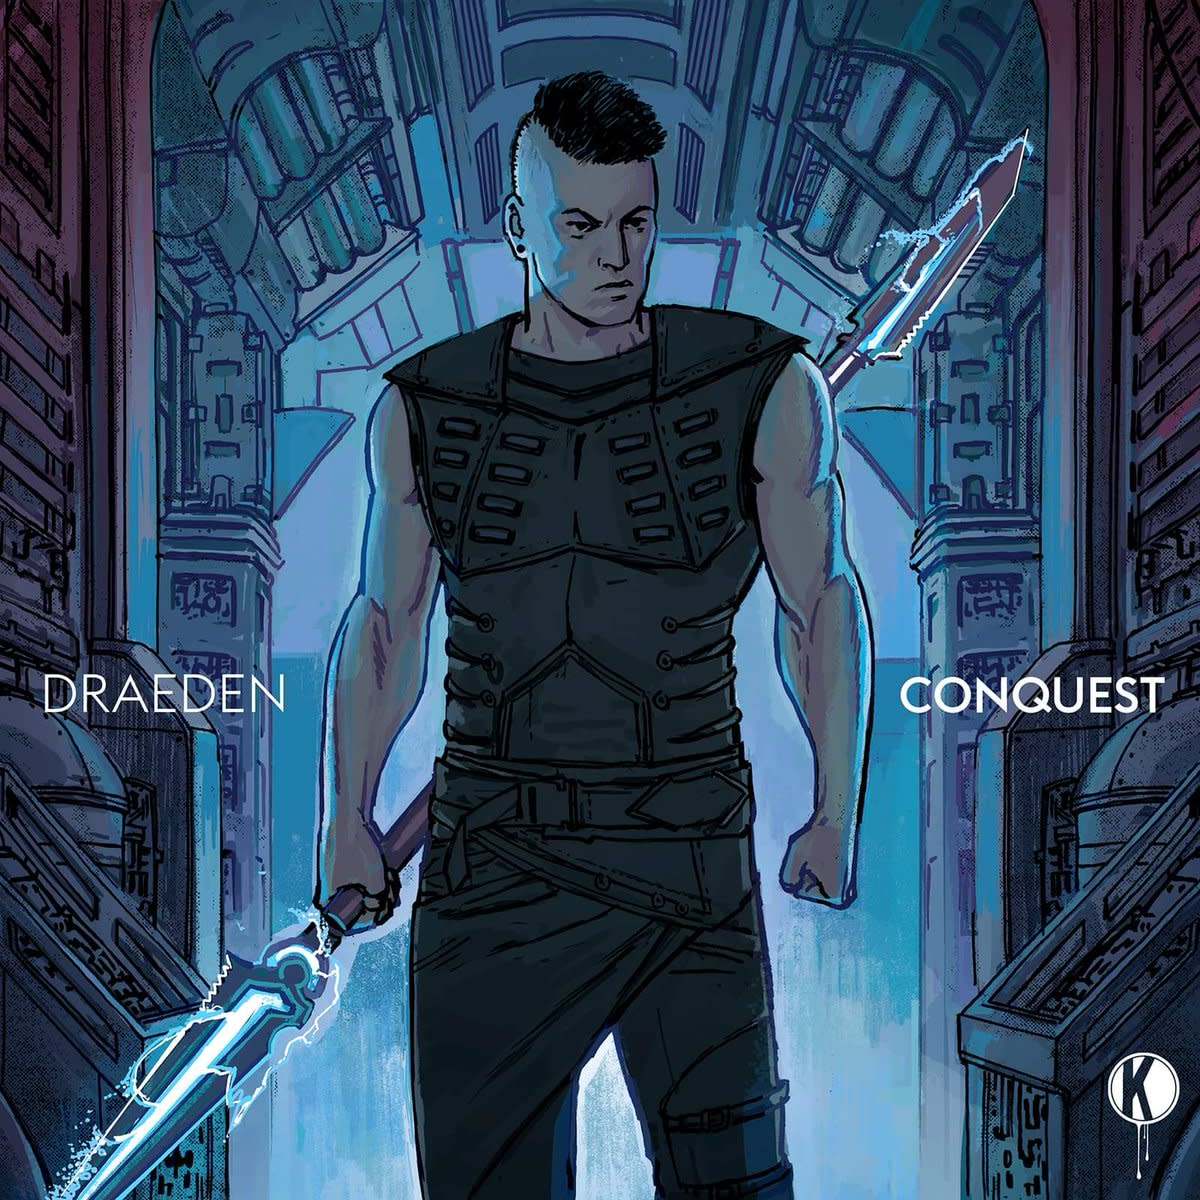 Draeden Releases Monstrous Debut EP, Conquest, on Kannibalen Records